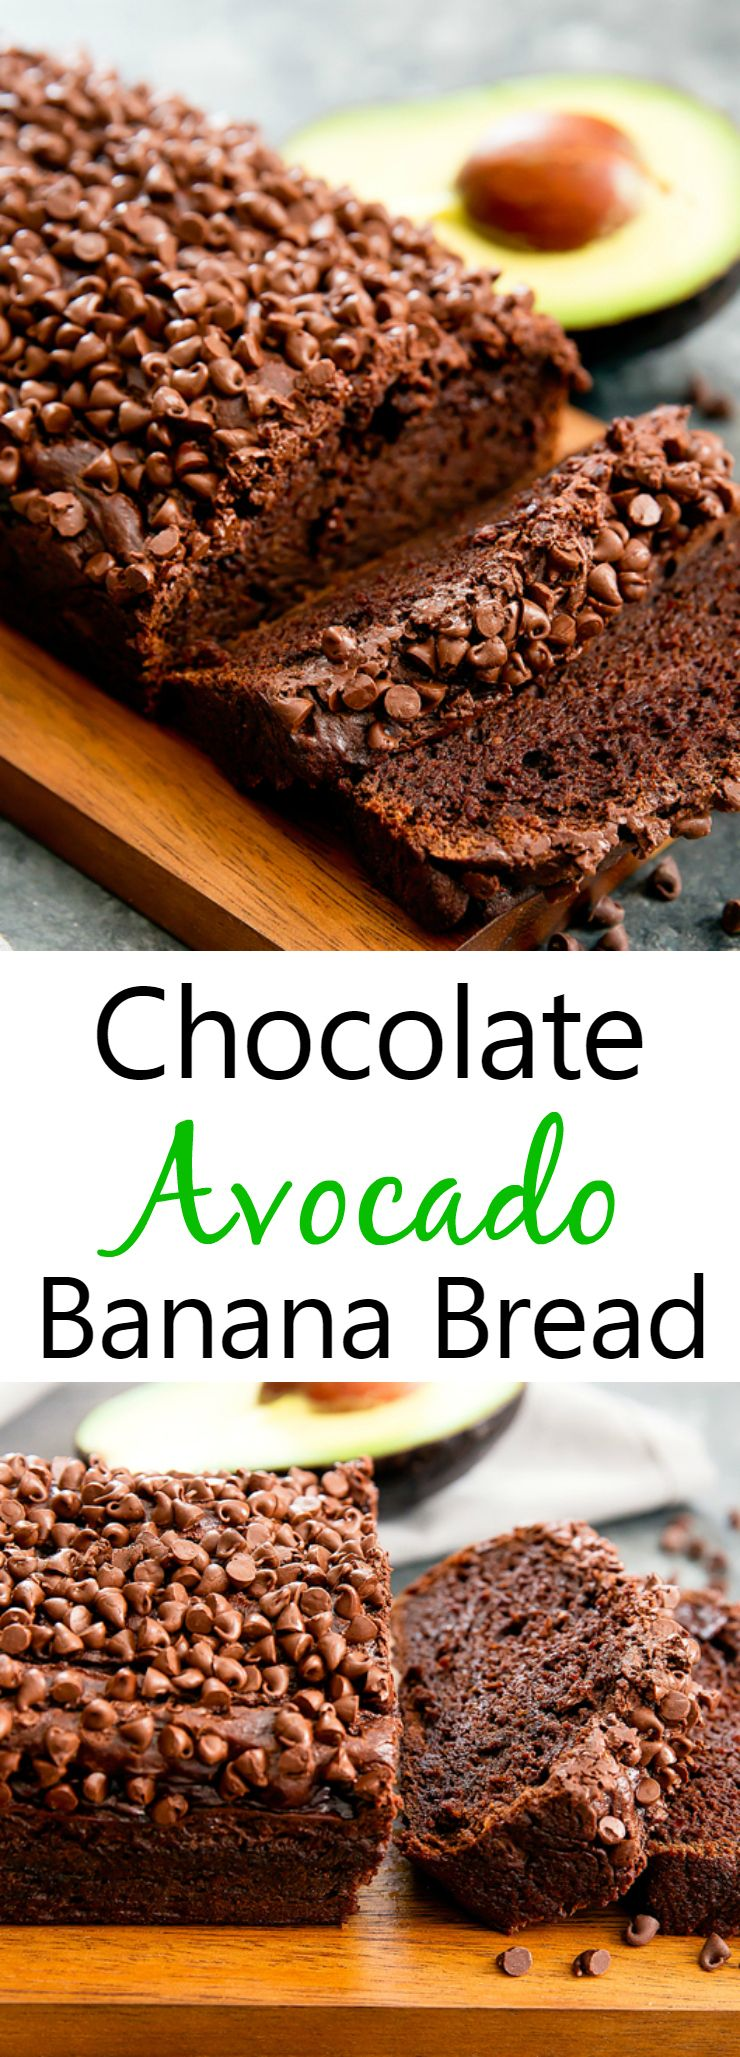 Chocolate Avocado Banana Bread. No oil or butter and everything can be prepared in a blender or food processor.